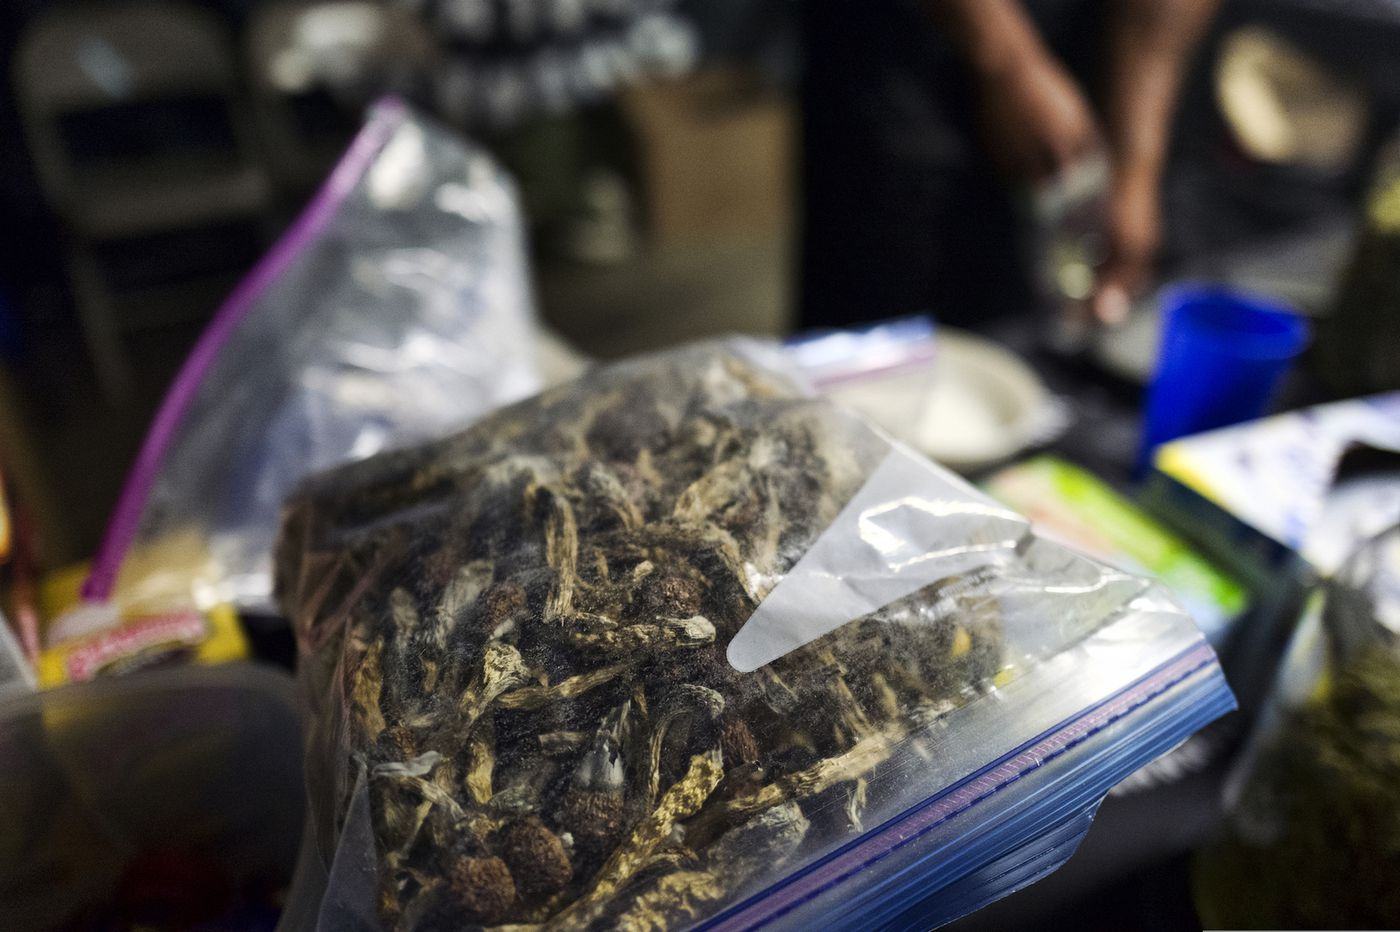 'Magic mushrooms' in Denver: Measure to decriminalize passes in final tally